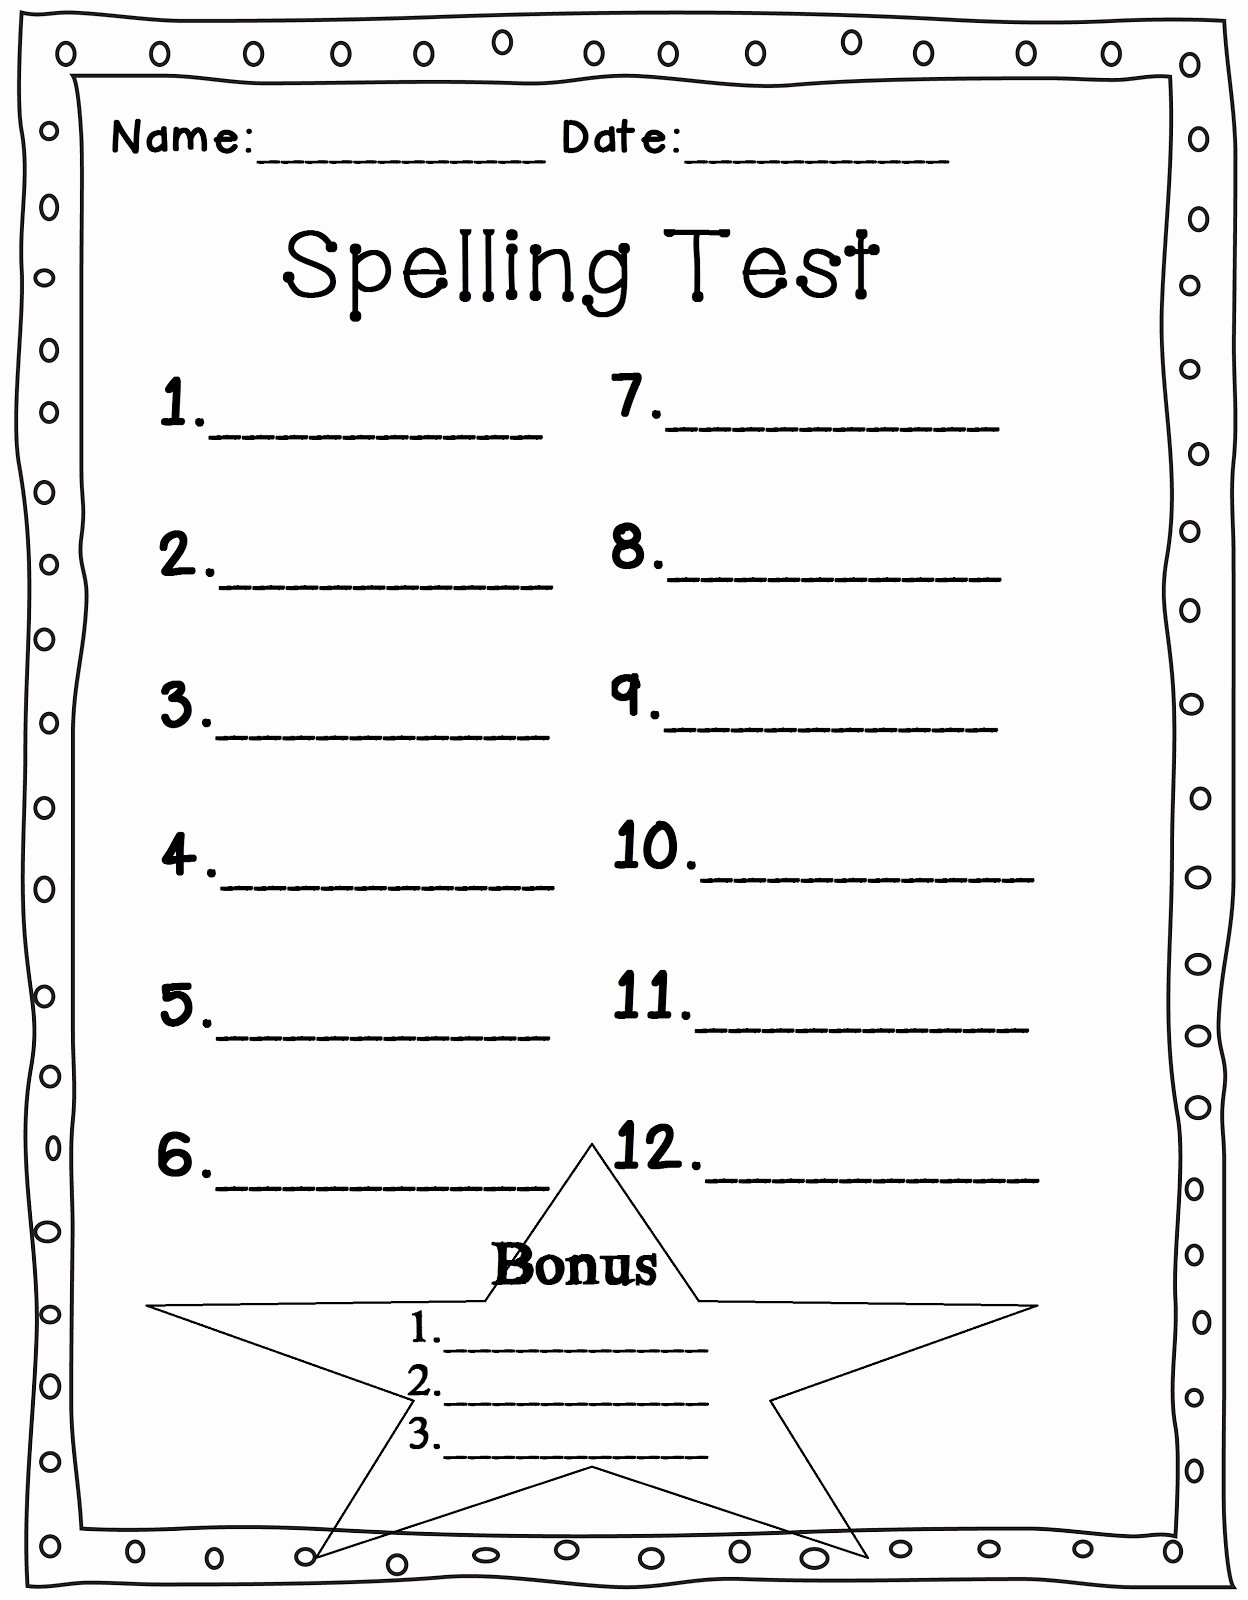 Blank Spelling Practice Worksheets Awesome Spelling Test Template